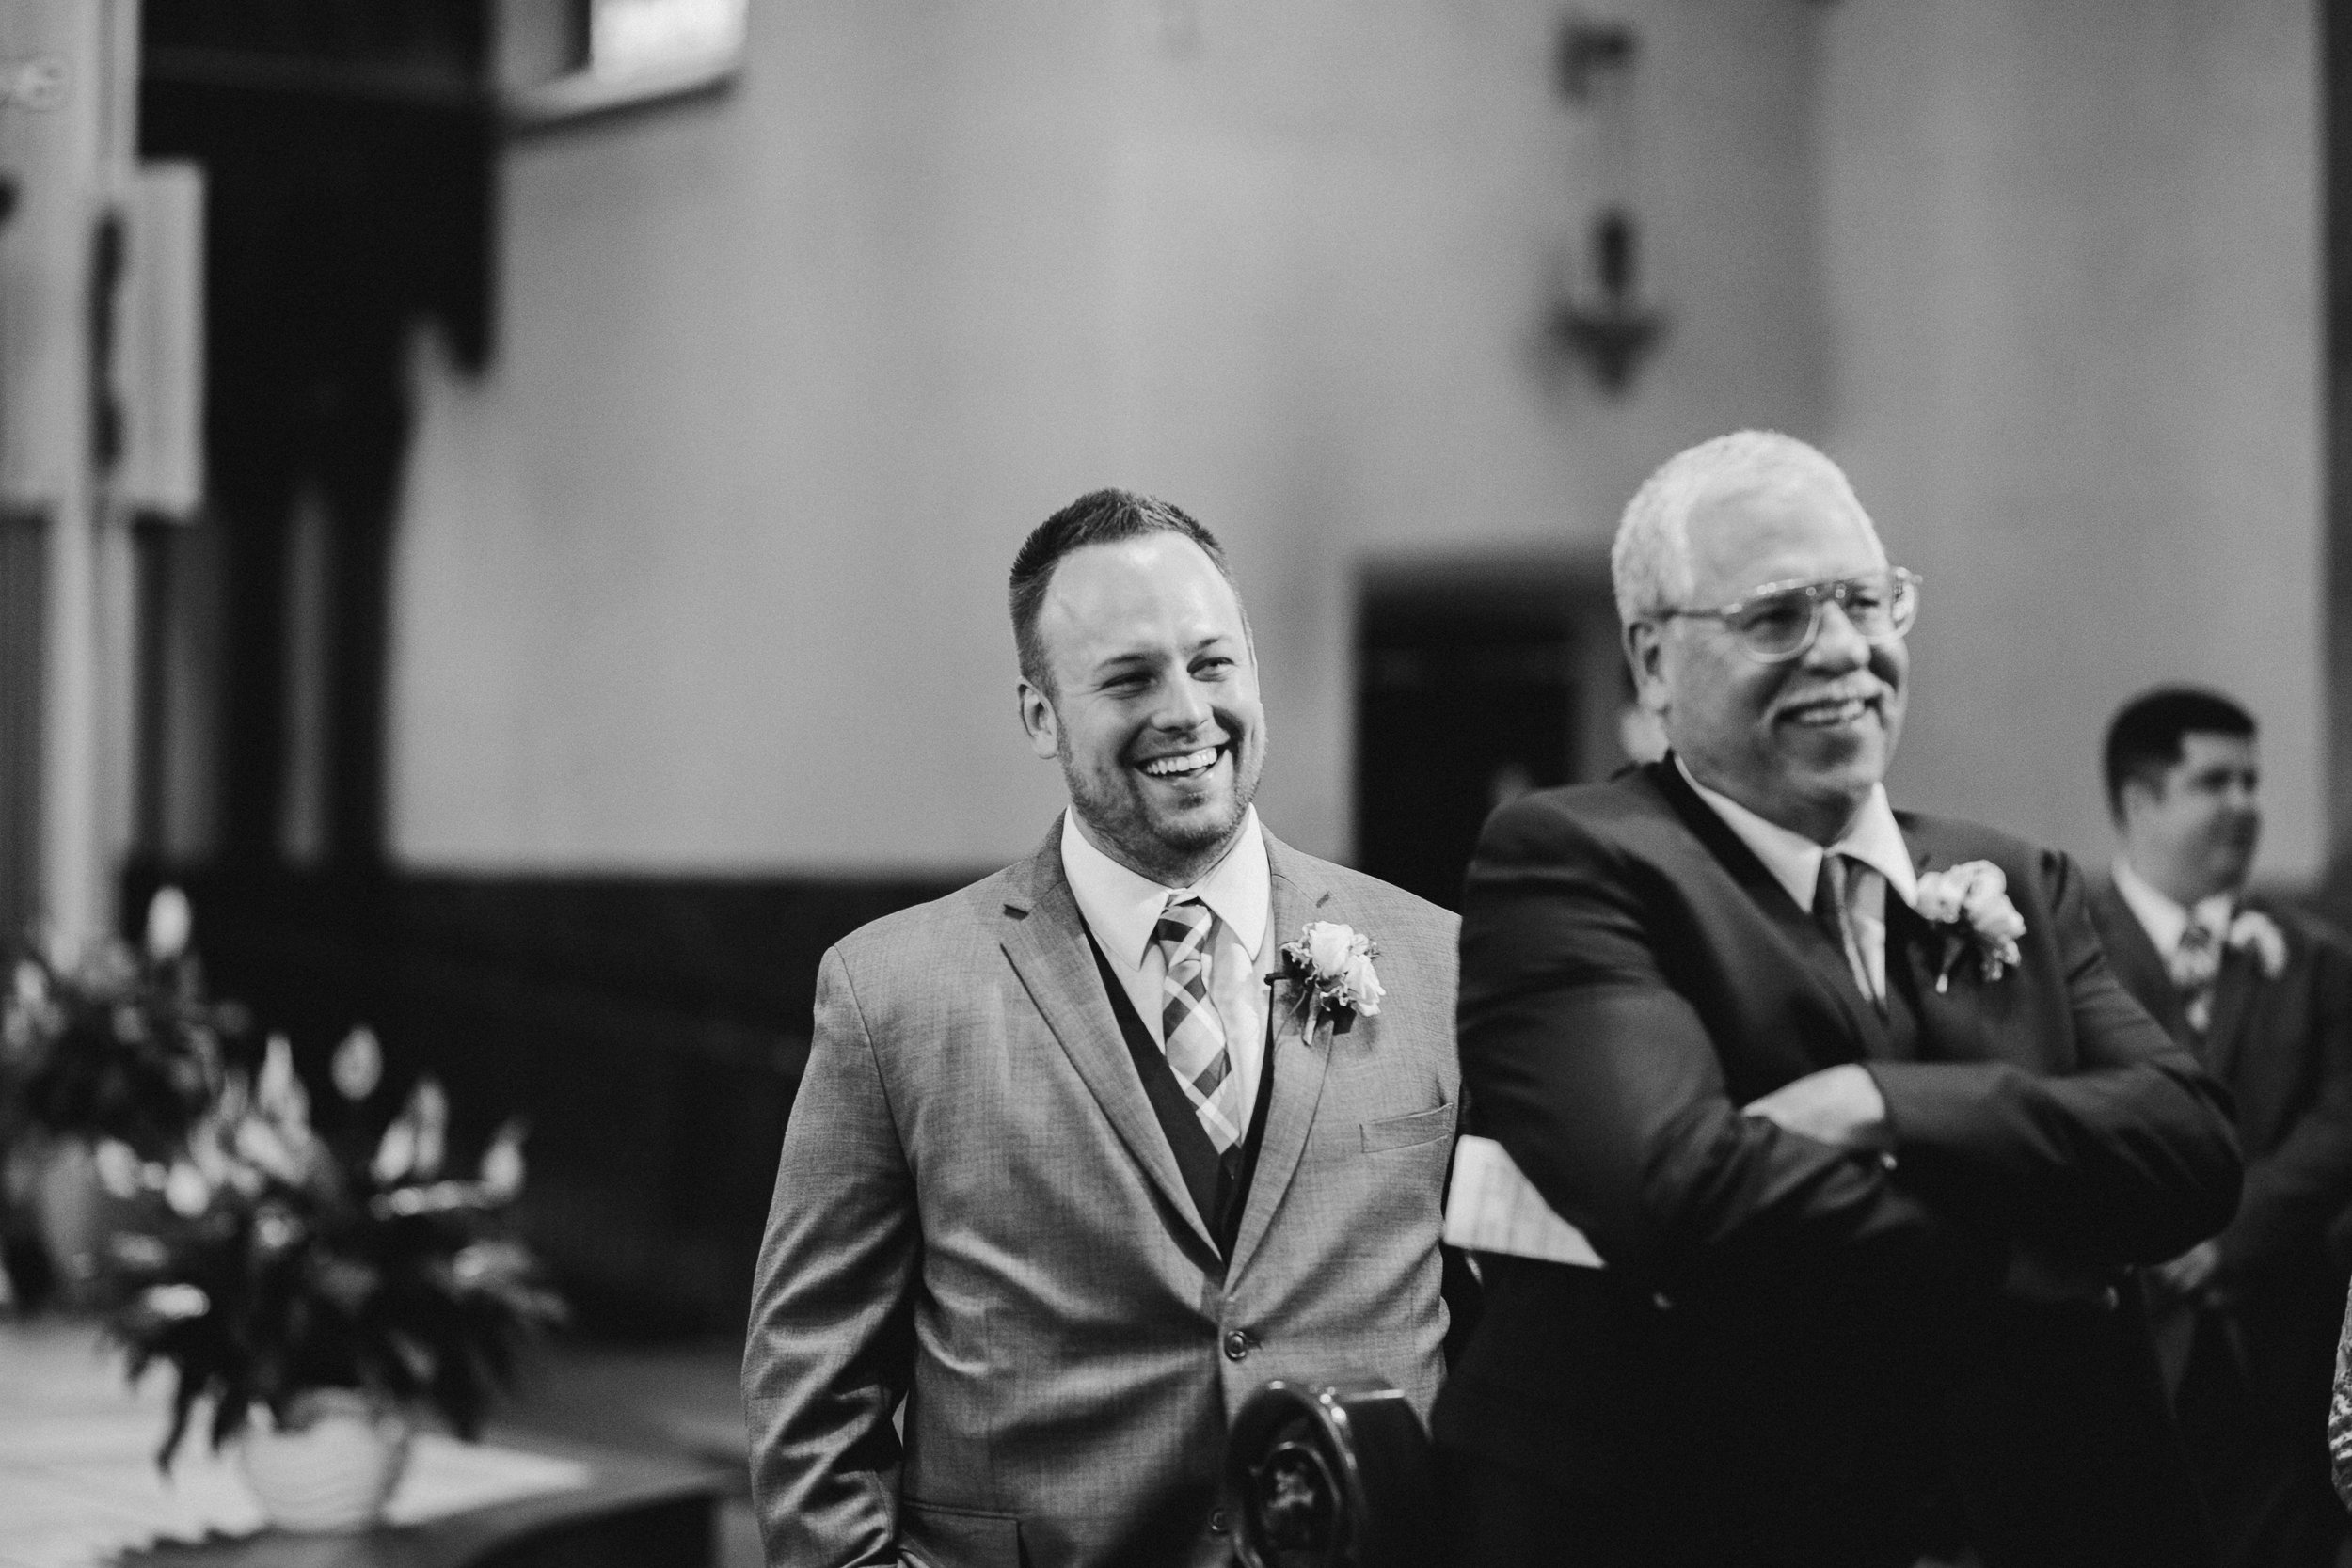 2018-5-Kelly-Jake-Ceremony-Grand-Rapids-Wedding-Michigan-Wedding-Photographer-50.jpg